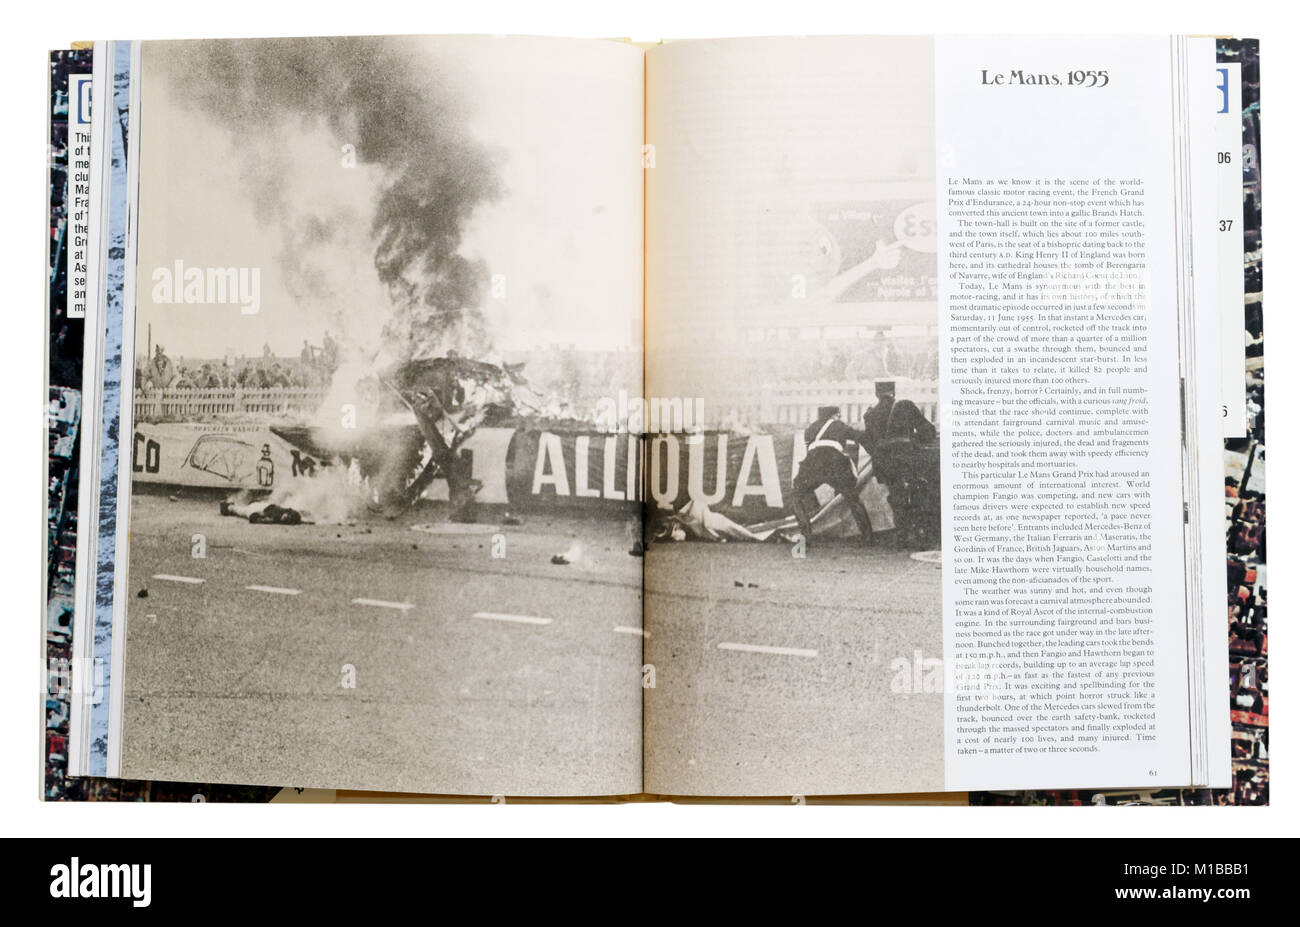 A book of disasters open to the page about the 1955 Le Mans race crash - Stock Image